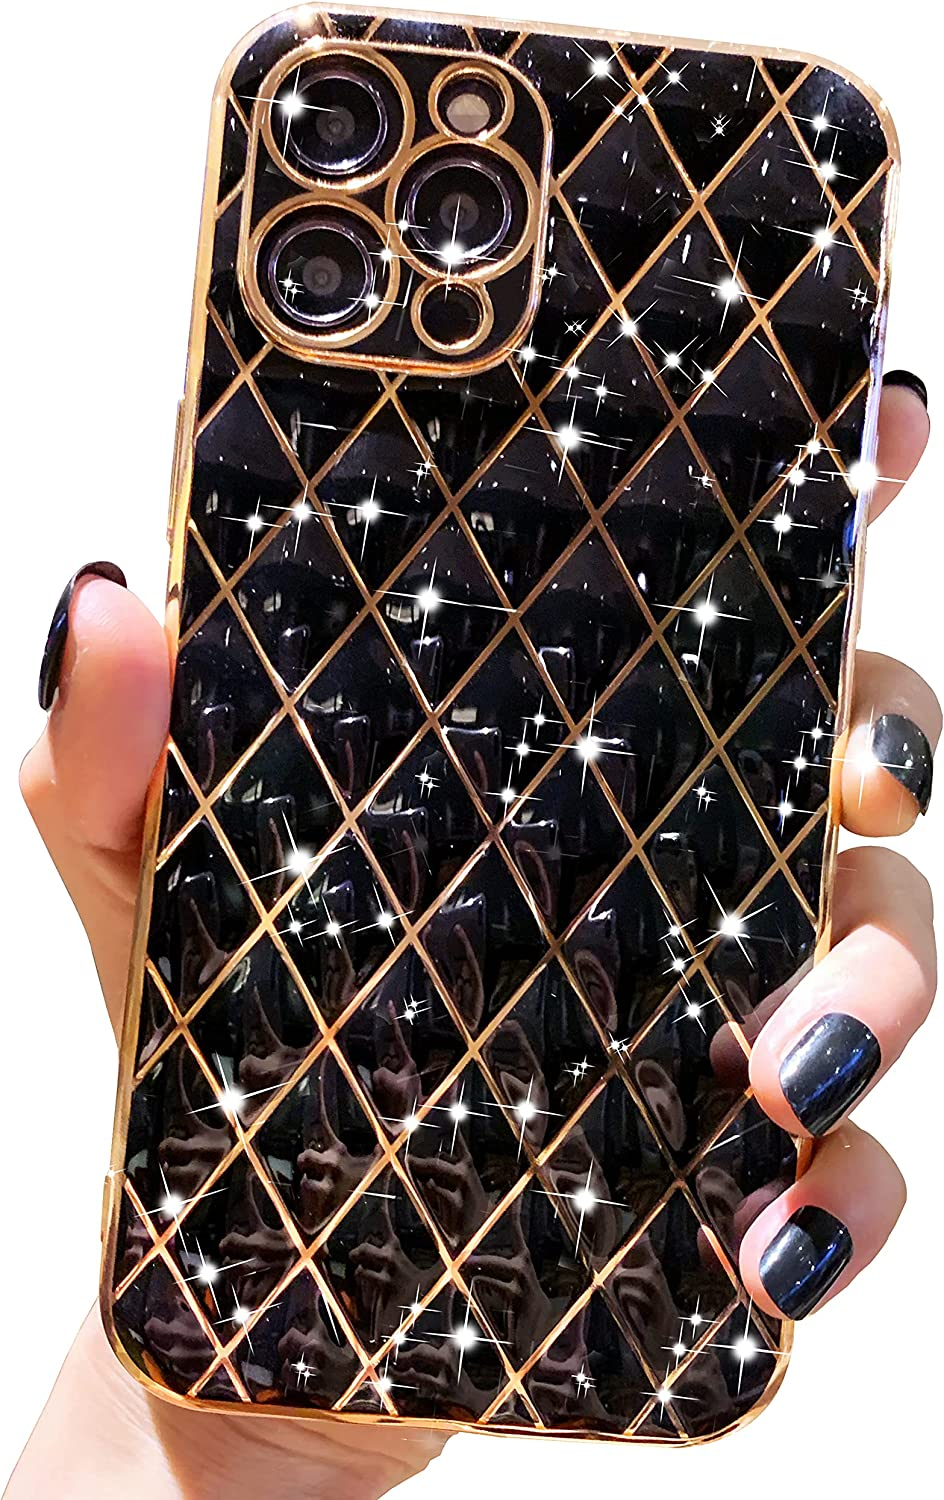 Anynve Compatible with iPhone 11 Pro Max Case, Glitter Sparkle Luxurly Plating Lattice Case, Full Camera Lens Protection Shockproof Edge Bumper TPU Cover for iPhone 11 Pro Max [6.5 inches] -Black